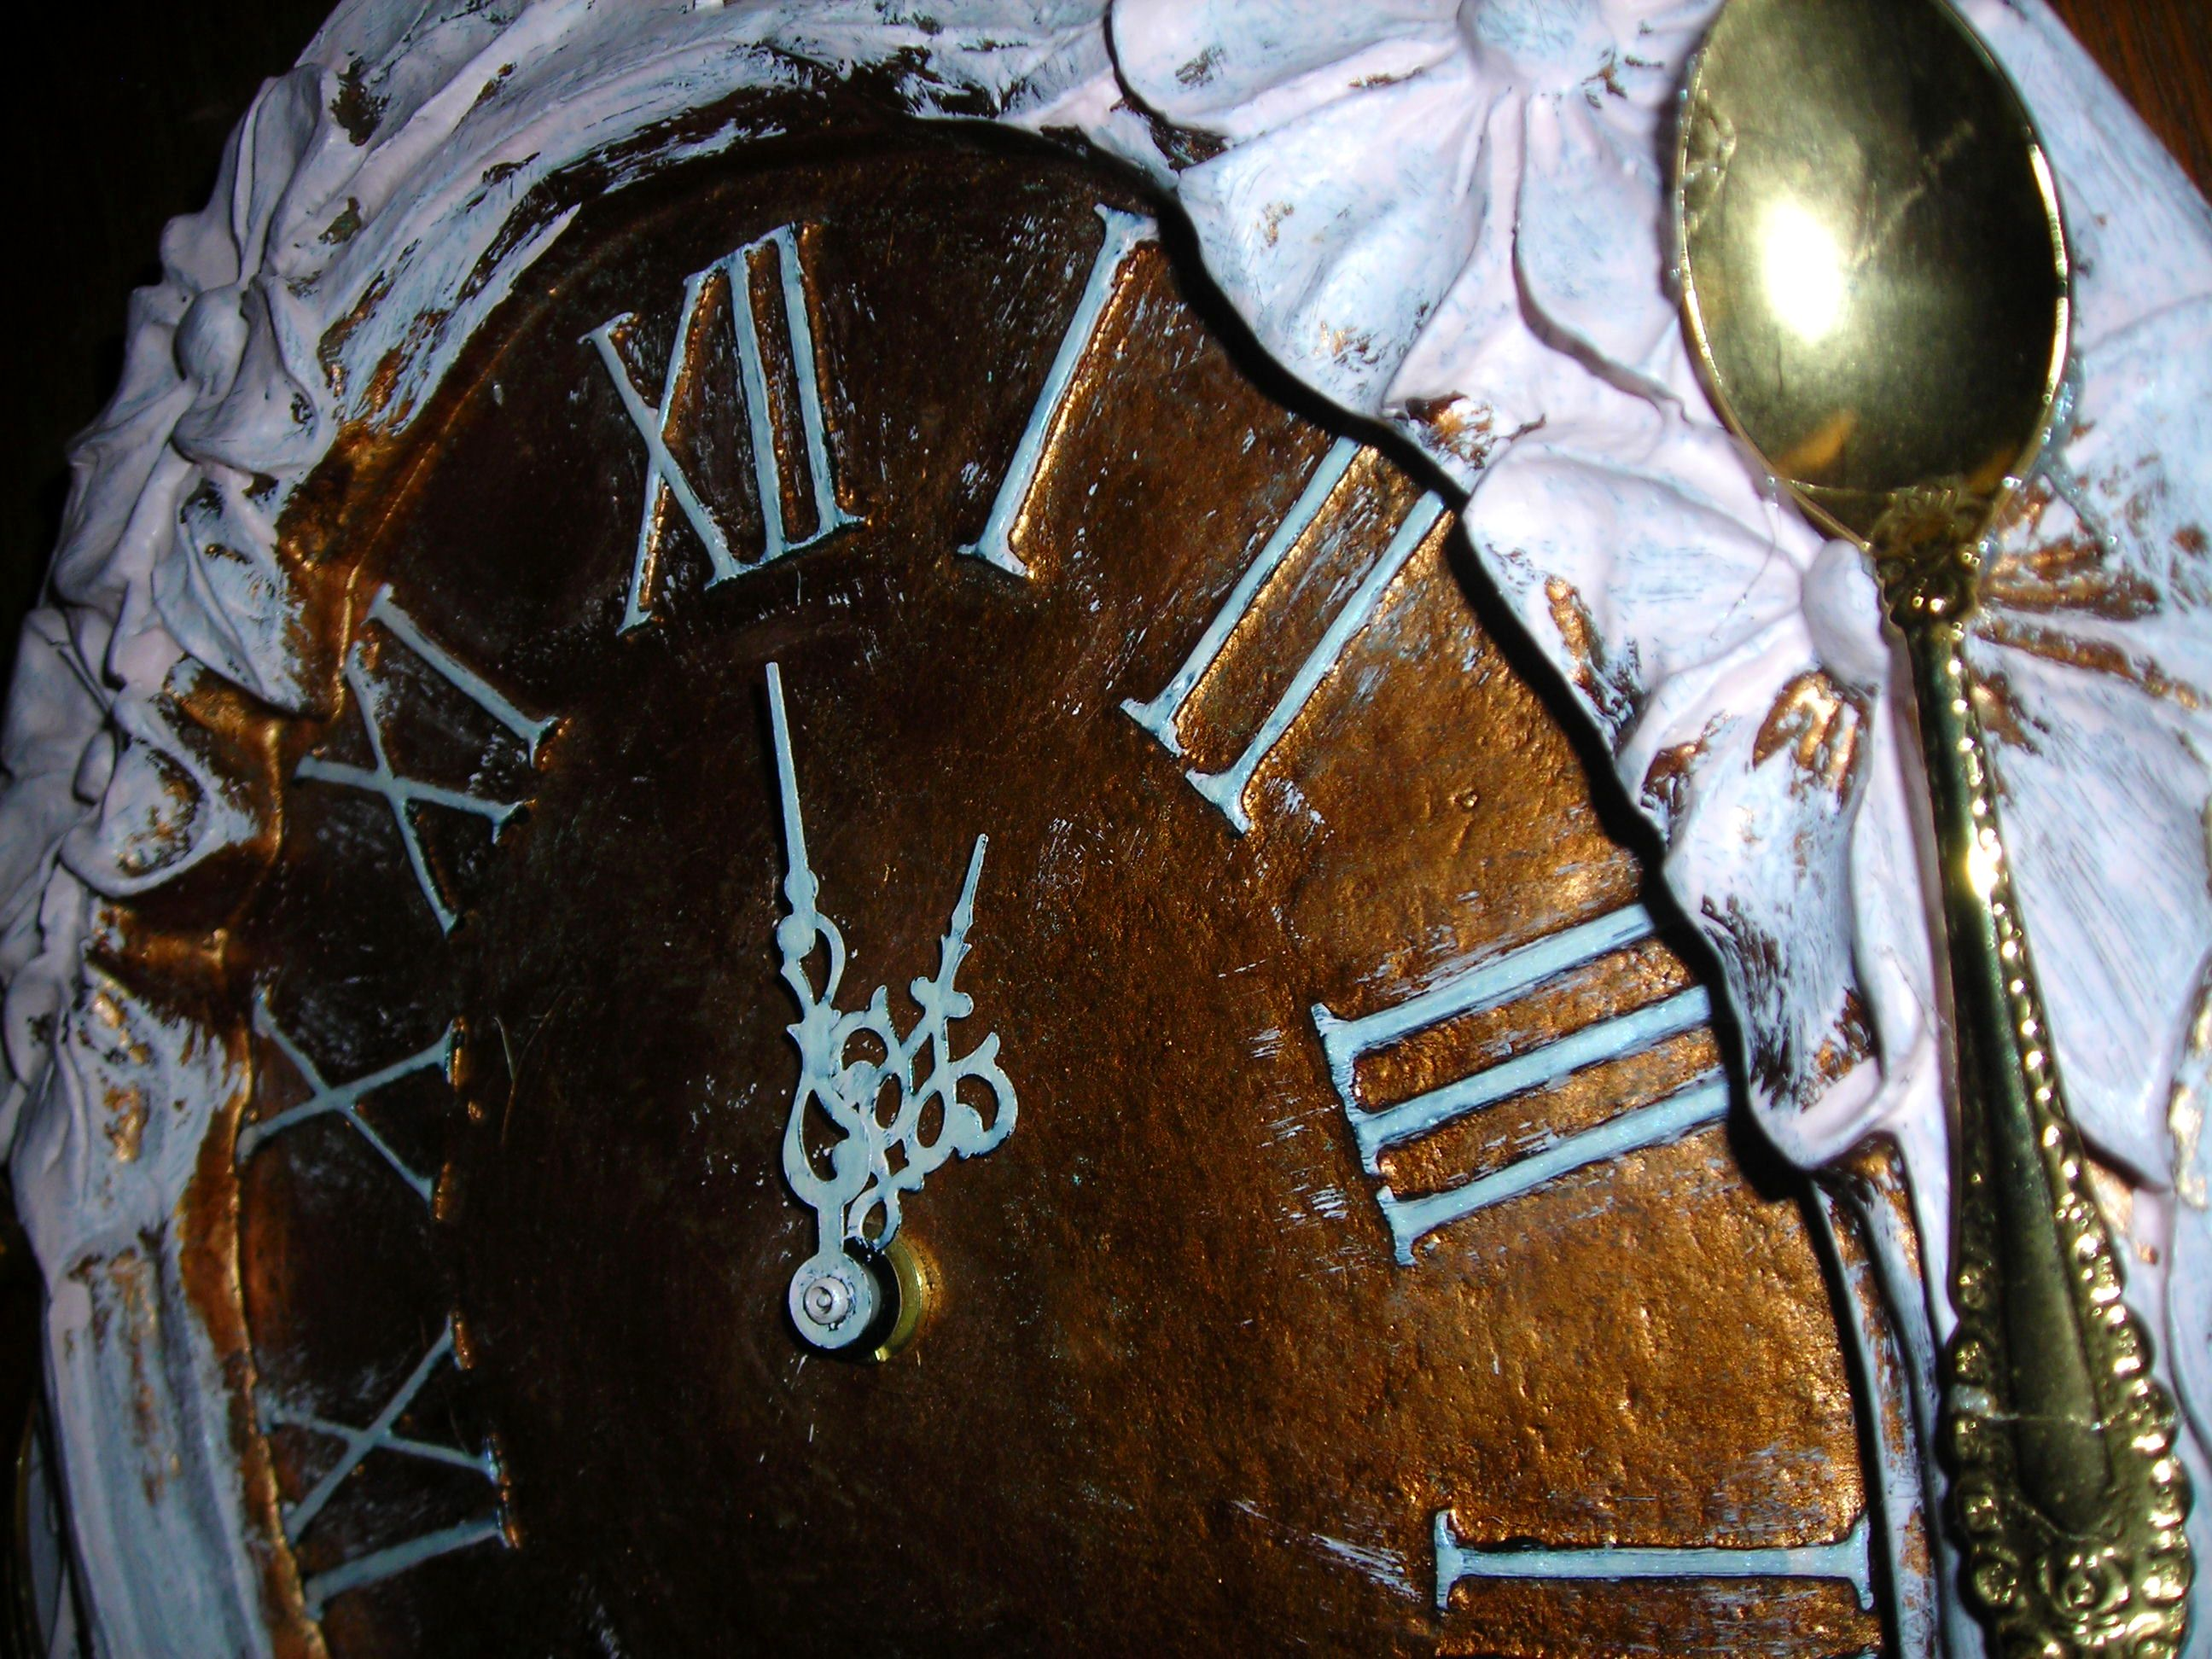 close up of my 'new' kitchen clock